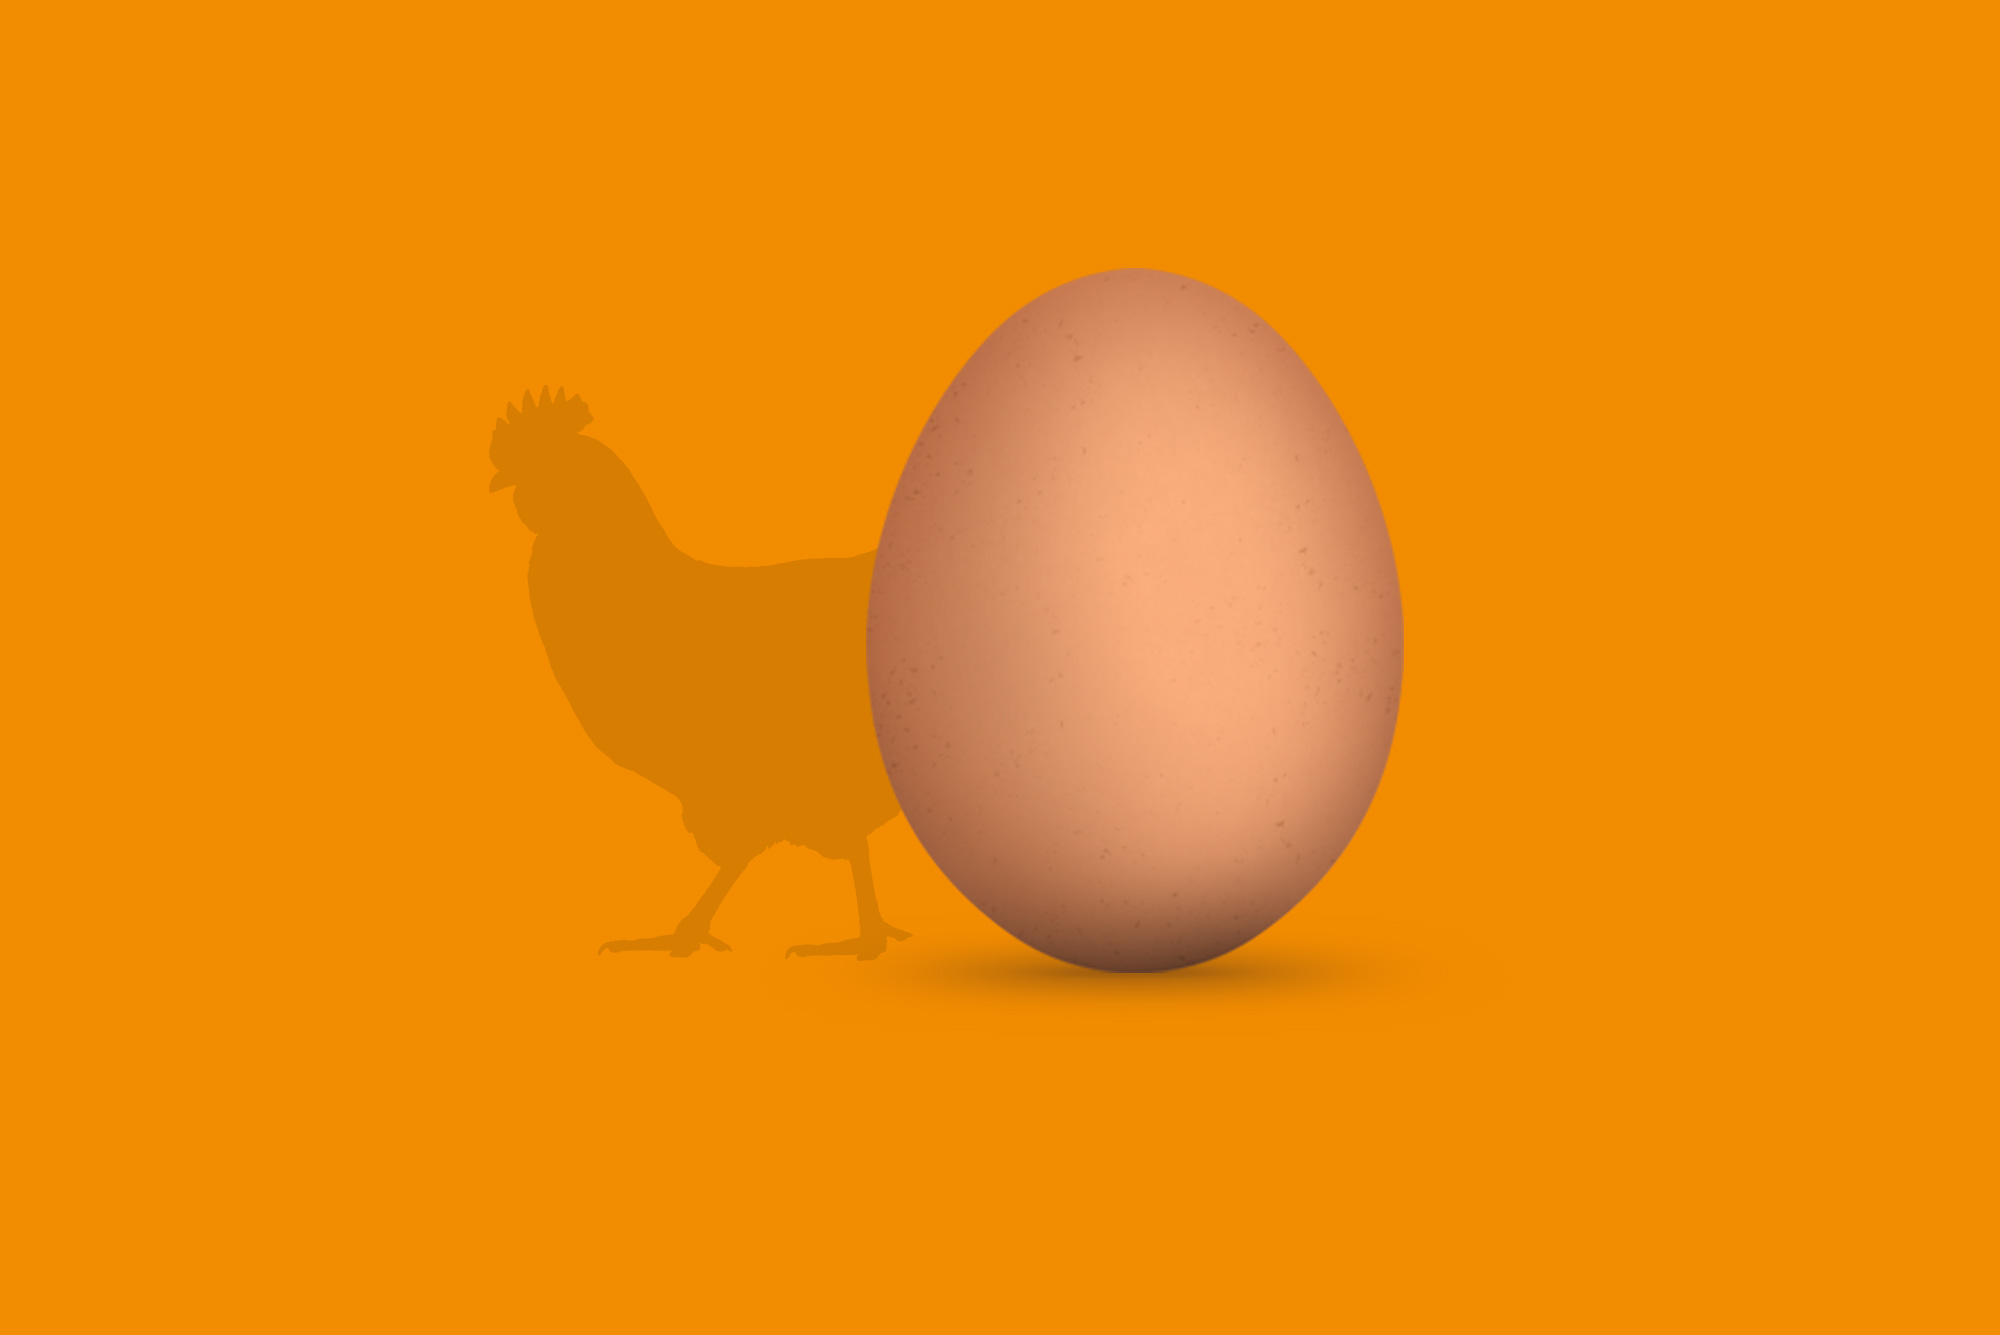 Egg and chicken on orange background - Content and design considerations